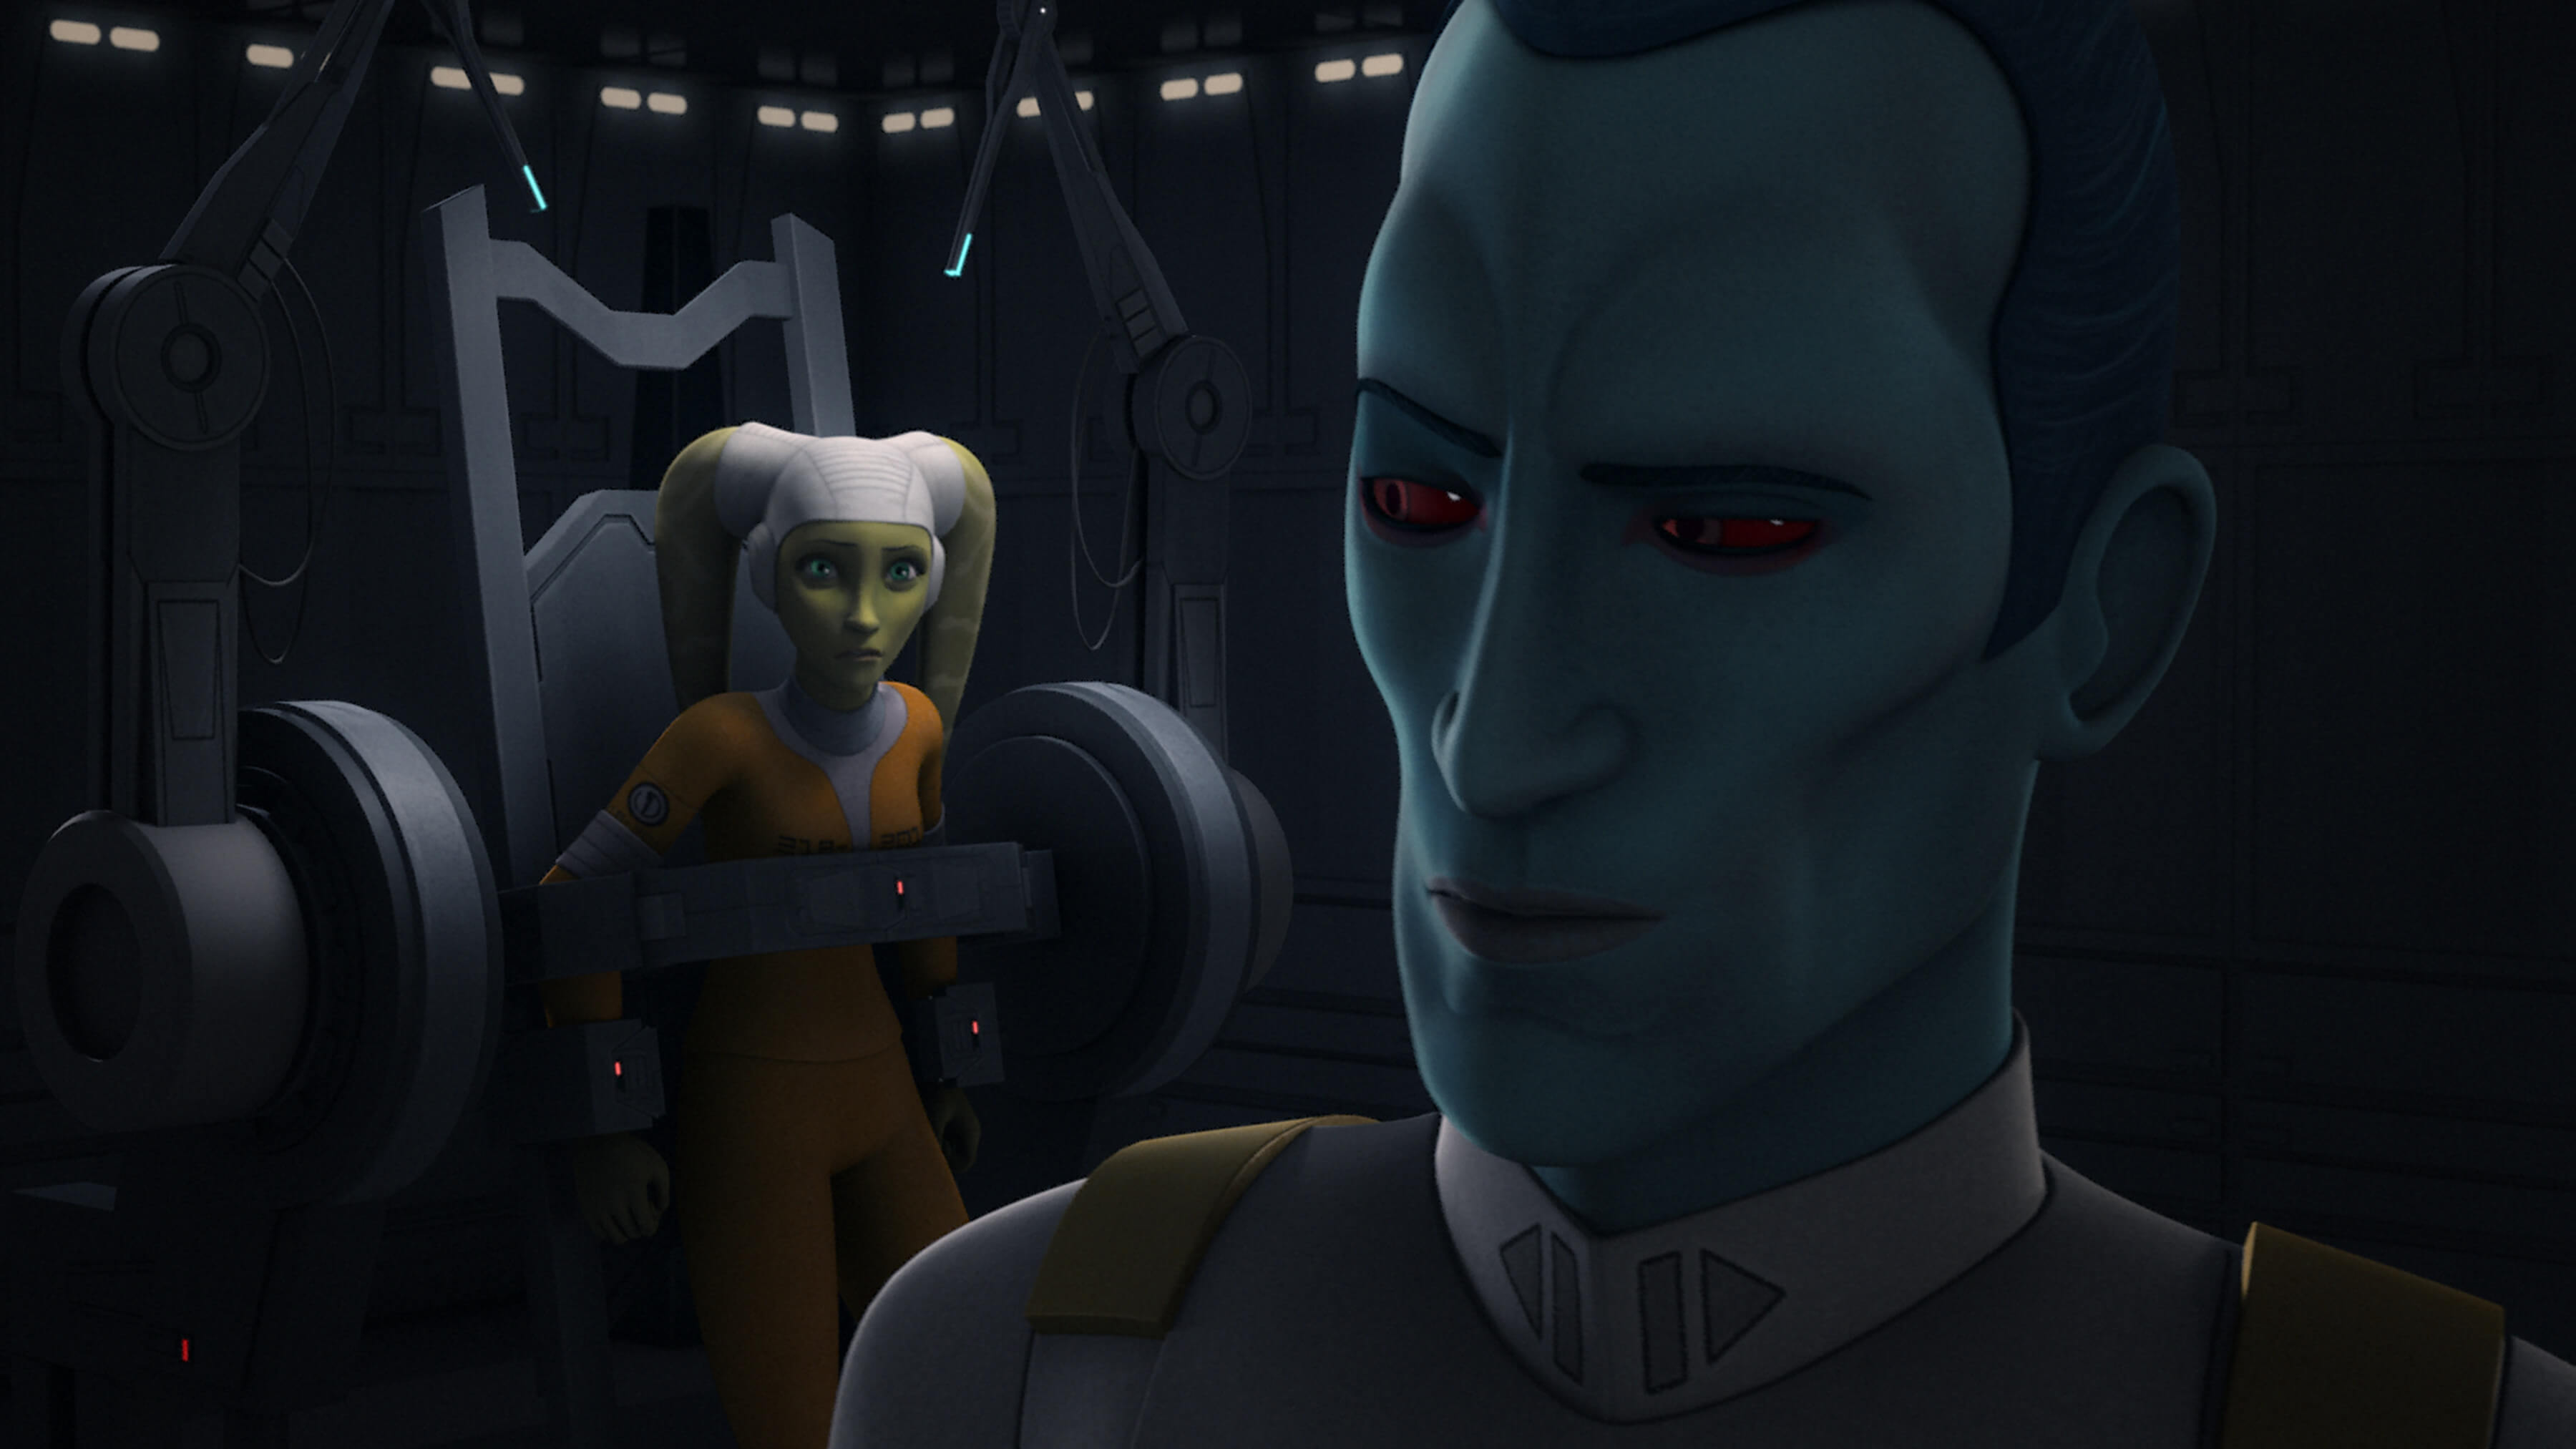 """REVIEW: Star Wars Rebels - """"Jedi Night"""" and """"Dume"""" - Geeks ... - photo#43"""